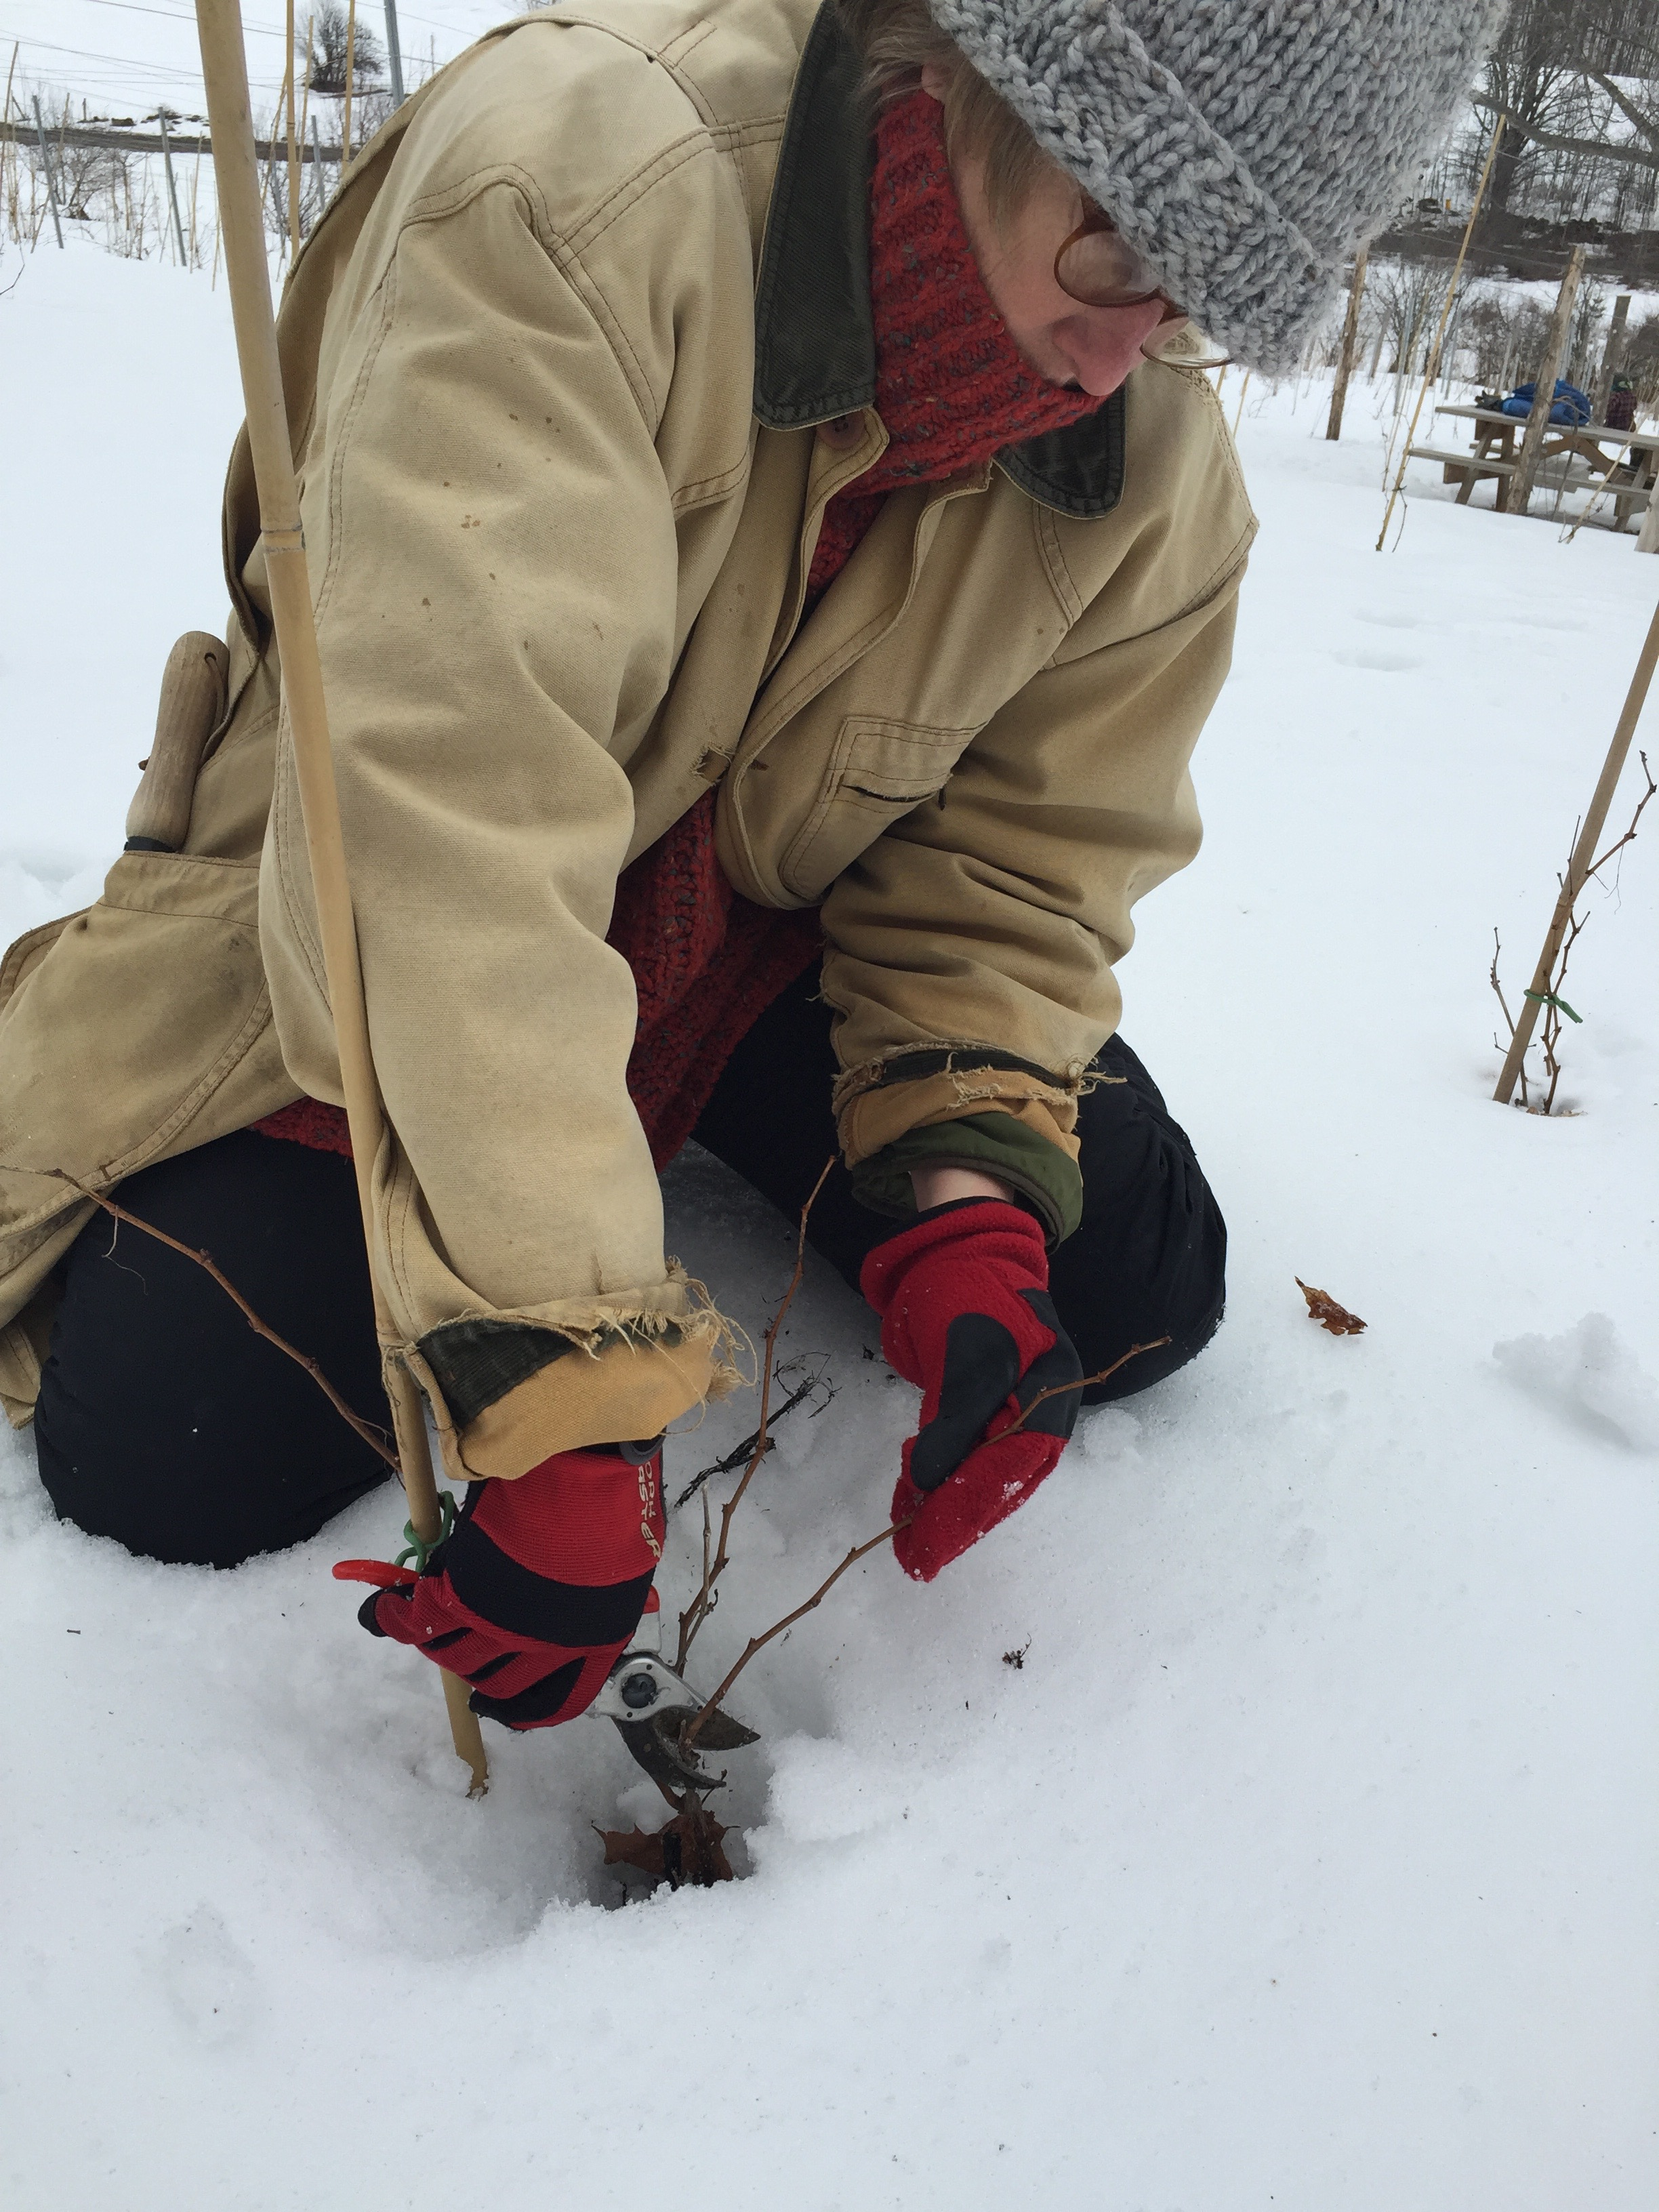 39 S pruning in snow.jpg